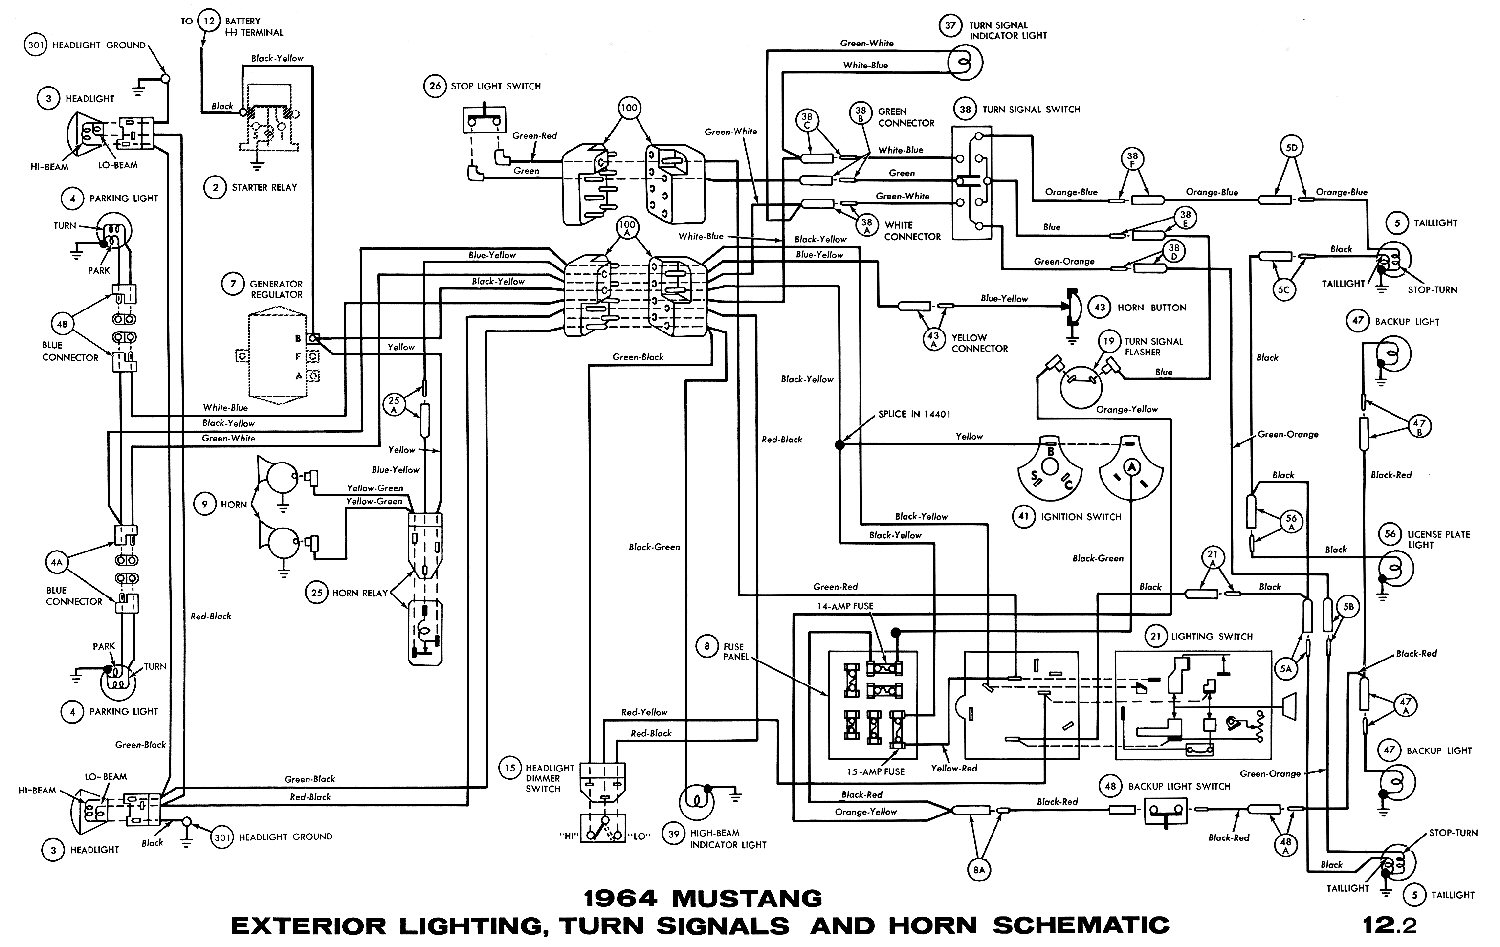 1968 ford mustang wiring harness diagram wiring diagram 1989 mustang turn signal wiring diagram